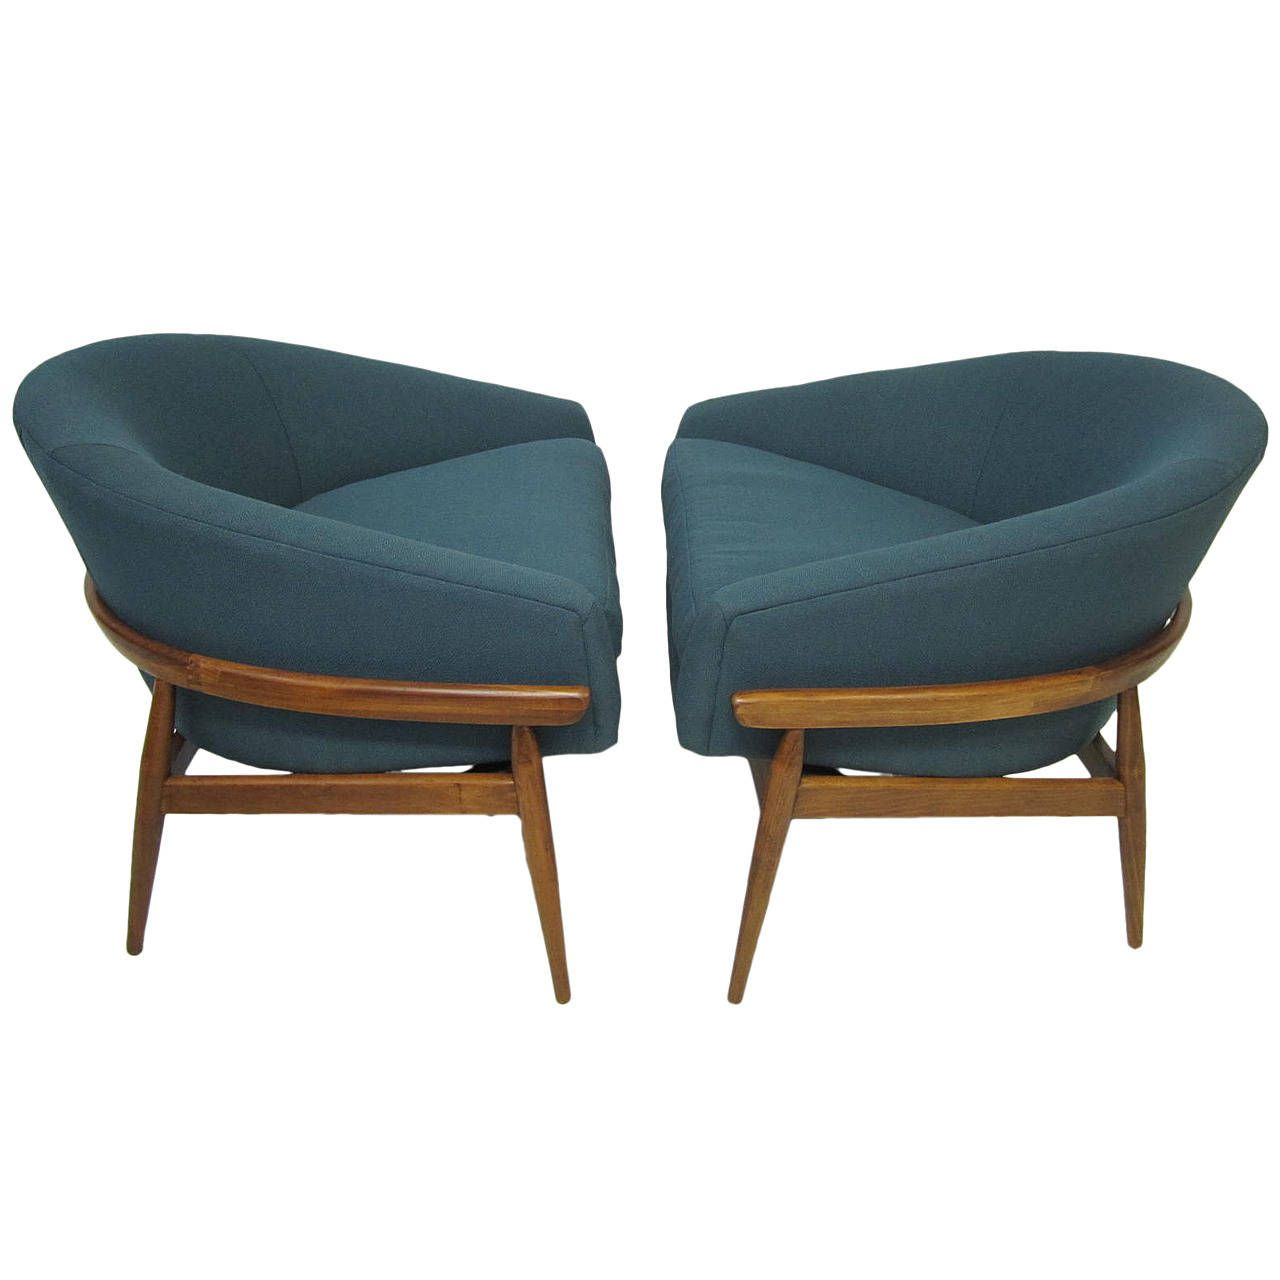 Genial Amazing Pair Of Milo Baughman Wide Barrel Back Lounge Chairs Mid Century  Modern | From A Unique Collection Of Antique And Modern Lounge Chairs At ...